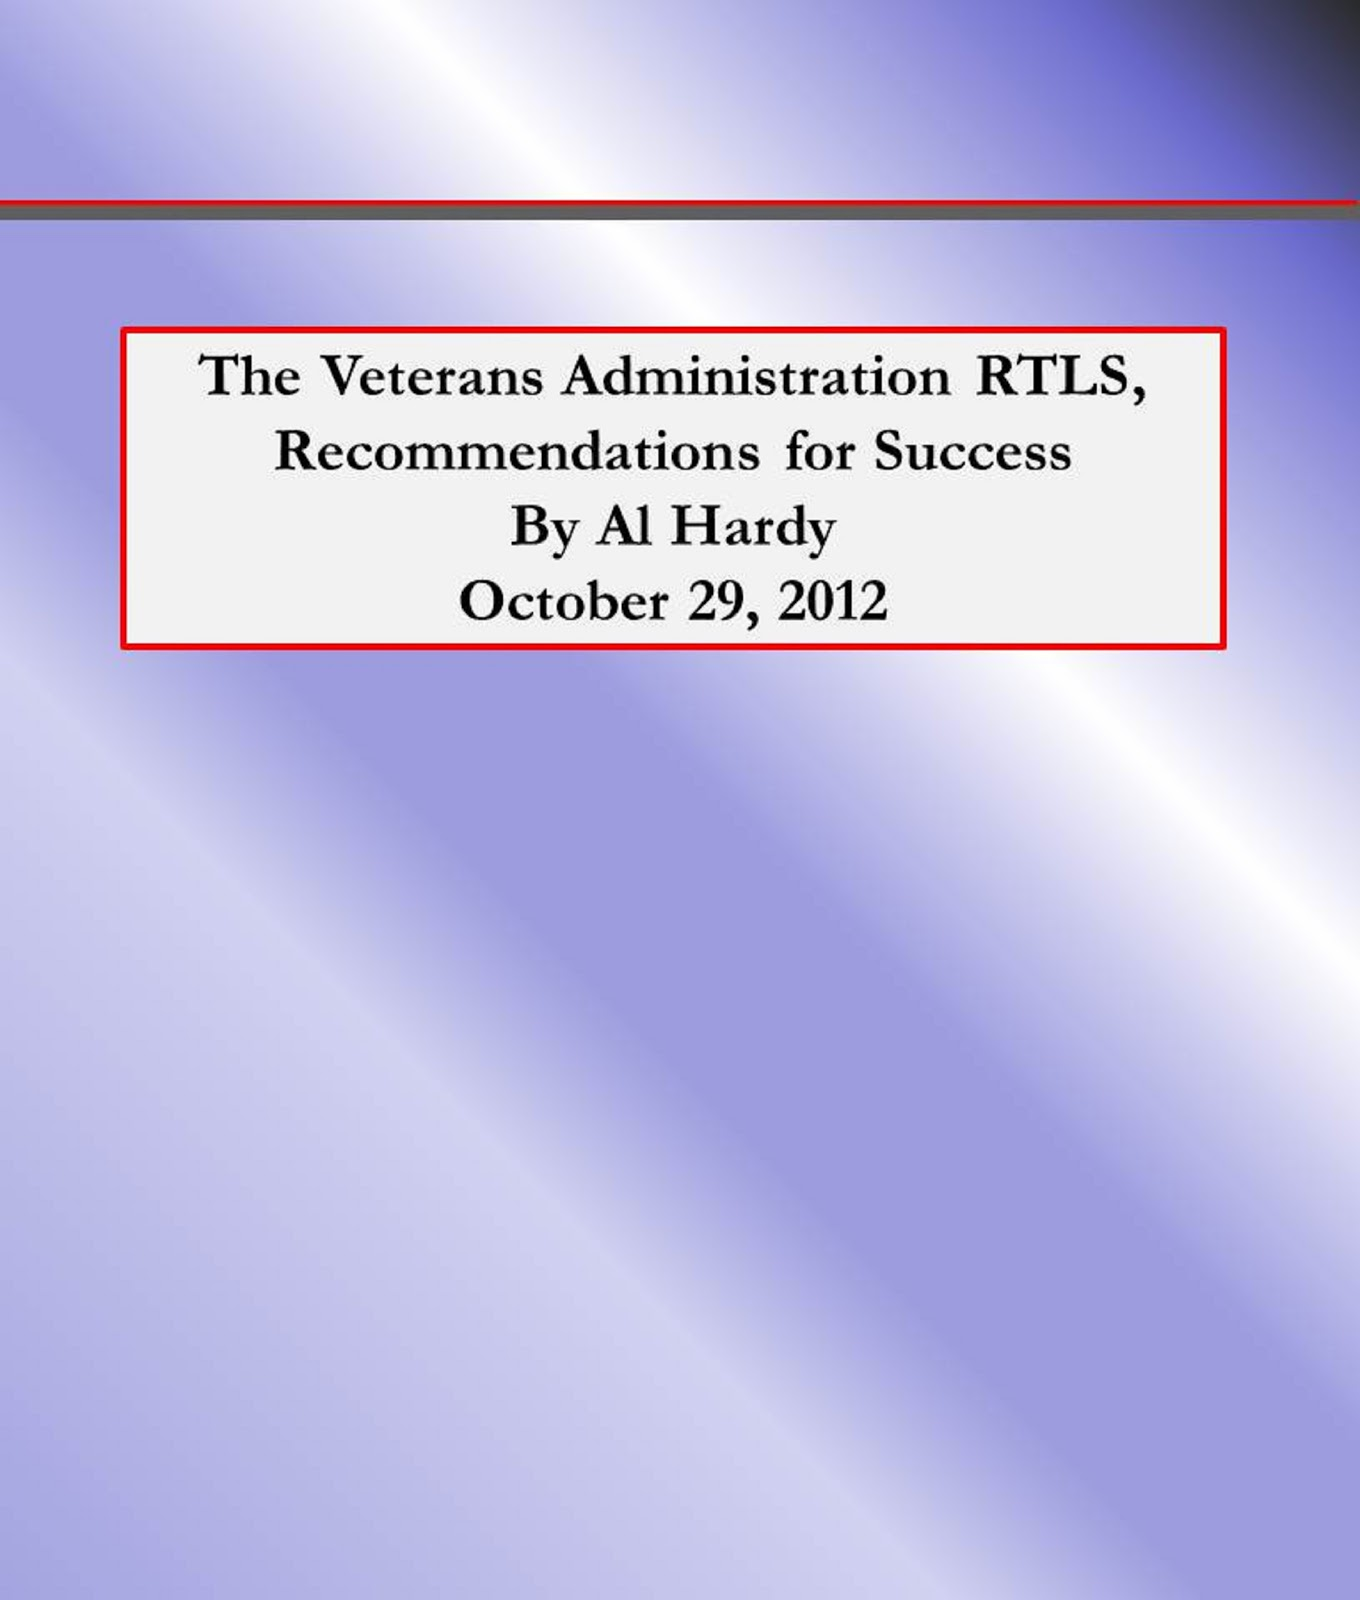 http://www.amazon.com/Veterans-Administration-RTLS-Recommendations-Success-ebook/dp/B00A0MS5MS/